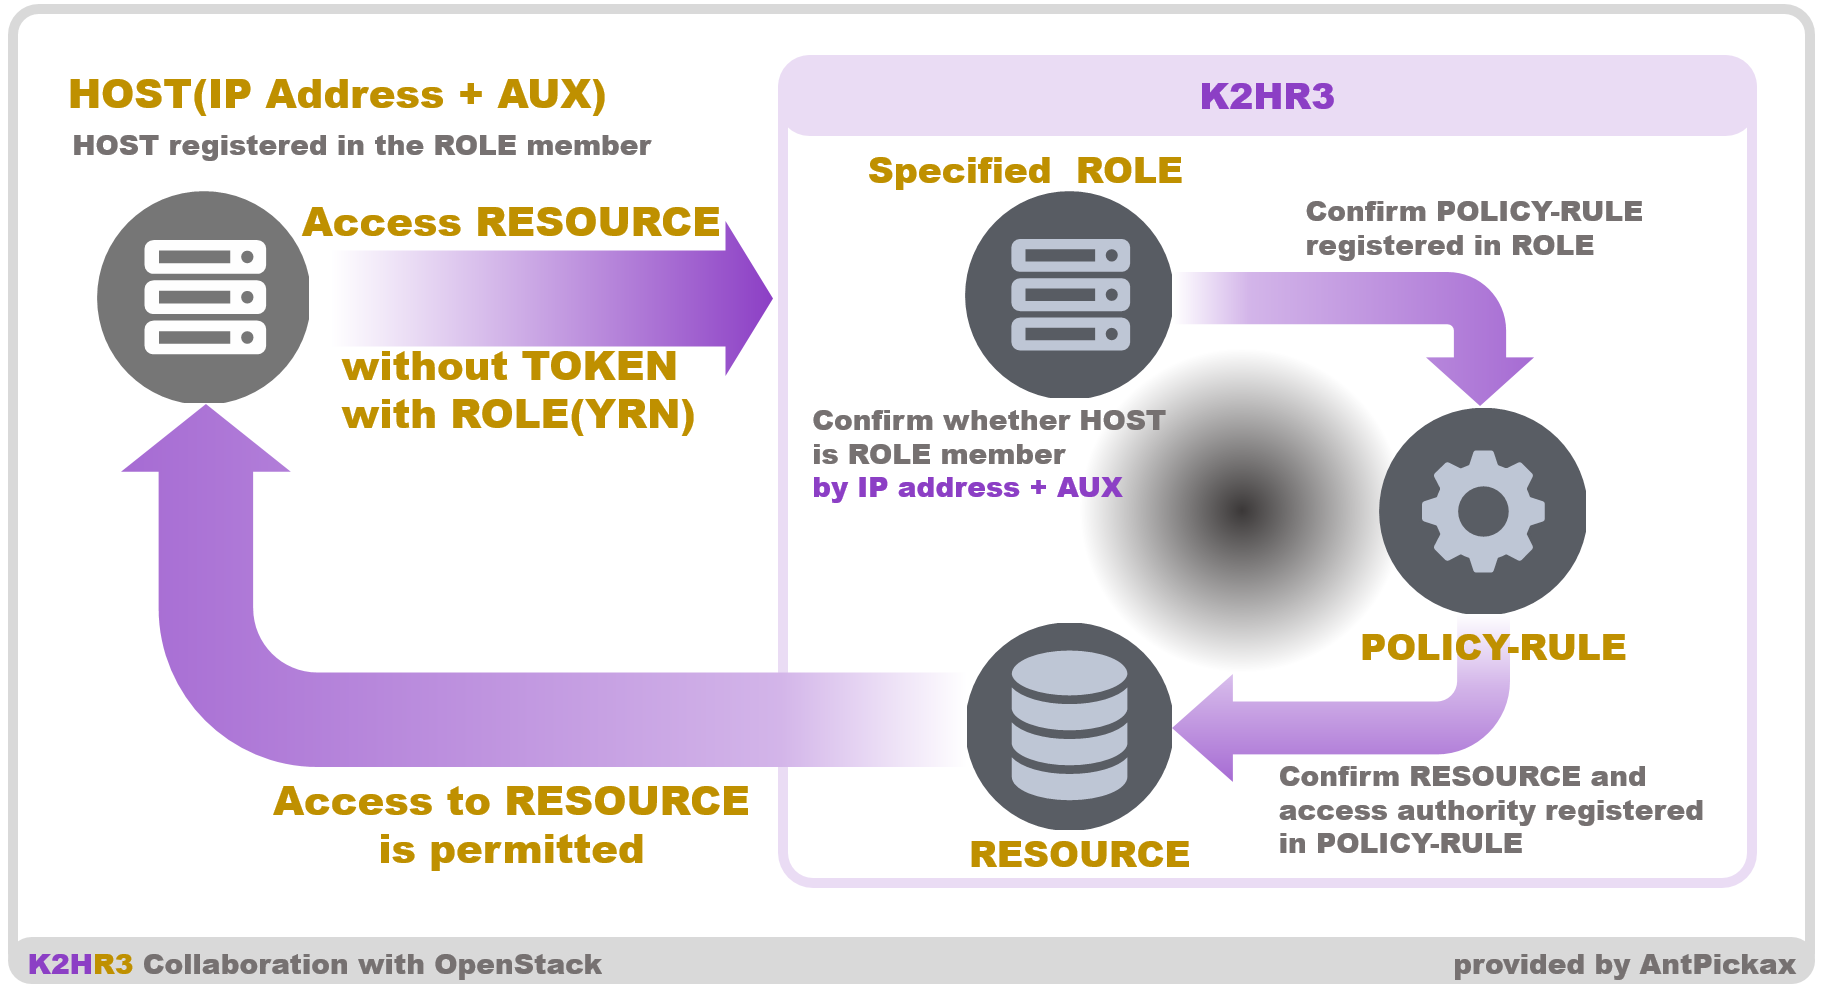 K2HR3 Usage RBAC - No Token Access